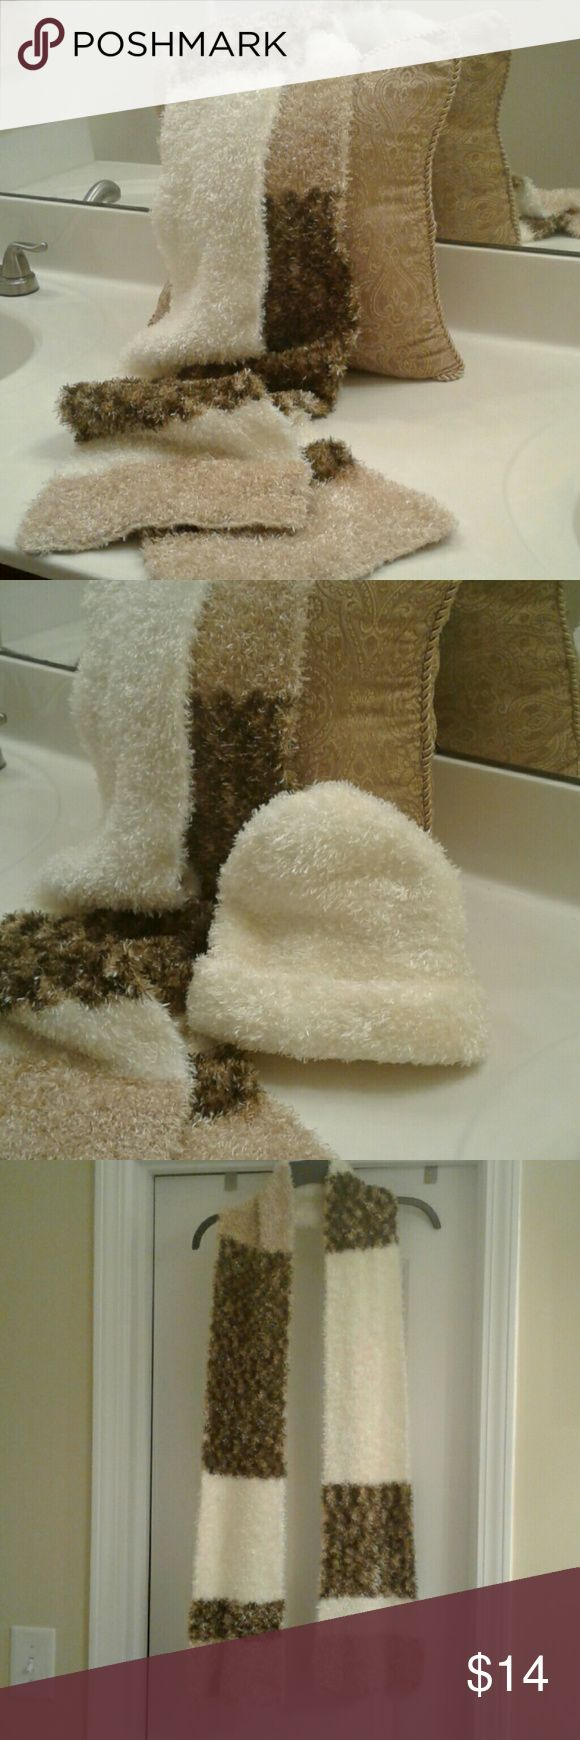 """Scarf This St. John's Bay beauty features super soft feather chenille scarf and hat! Beautiful white, tan and earth tones colors. Just in time for winter.  Hand wash cold Dry Flat 76"""" L x 9"""" W 100% Polyester St. John's Bay Accessories Scarves & Wraps"""